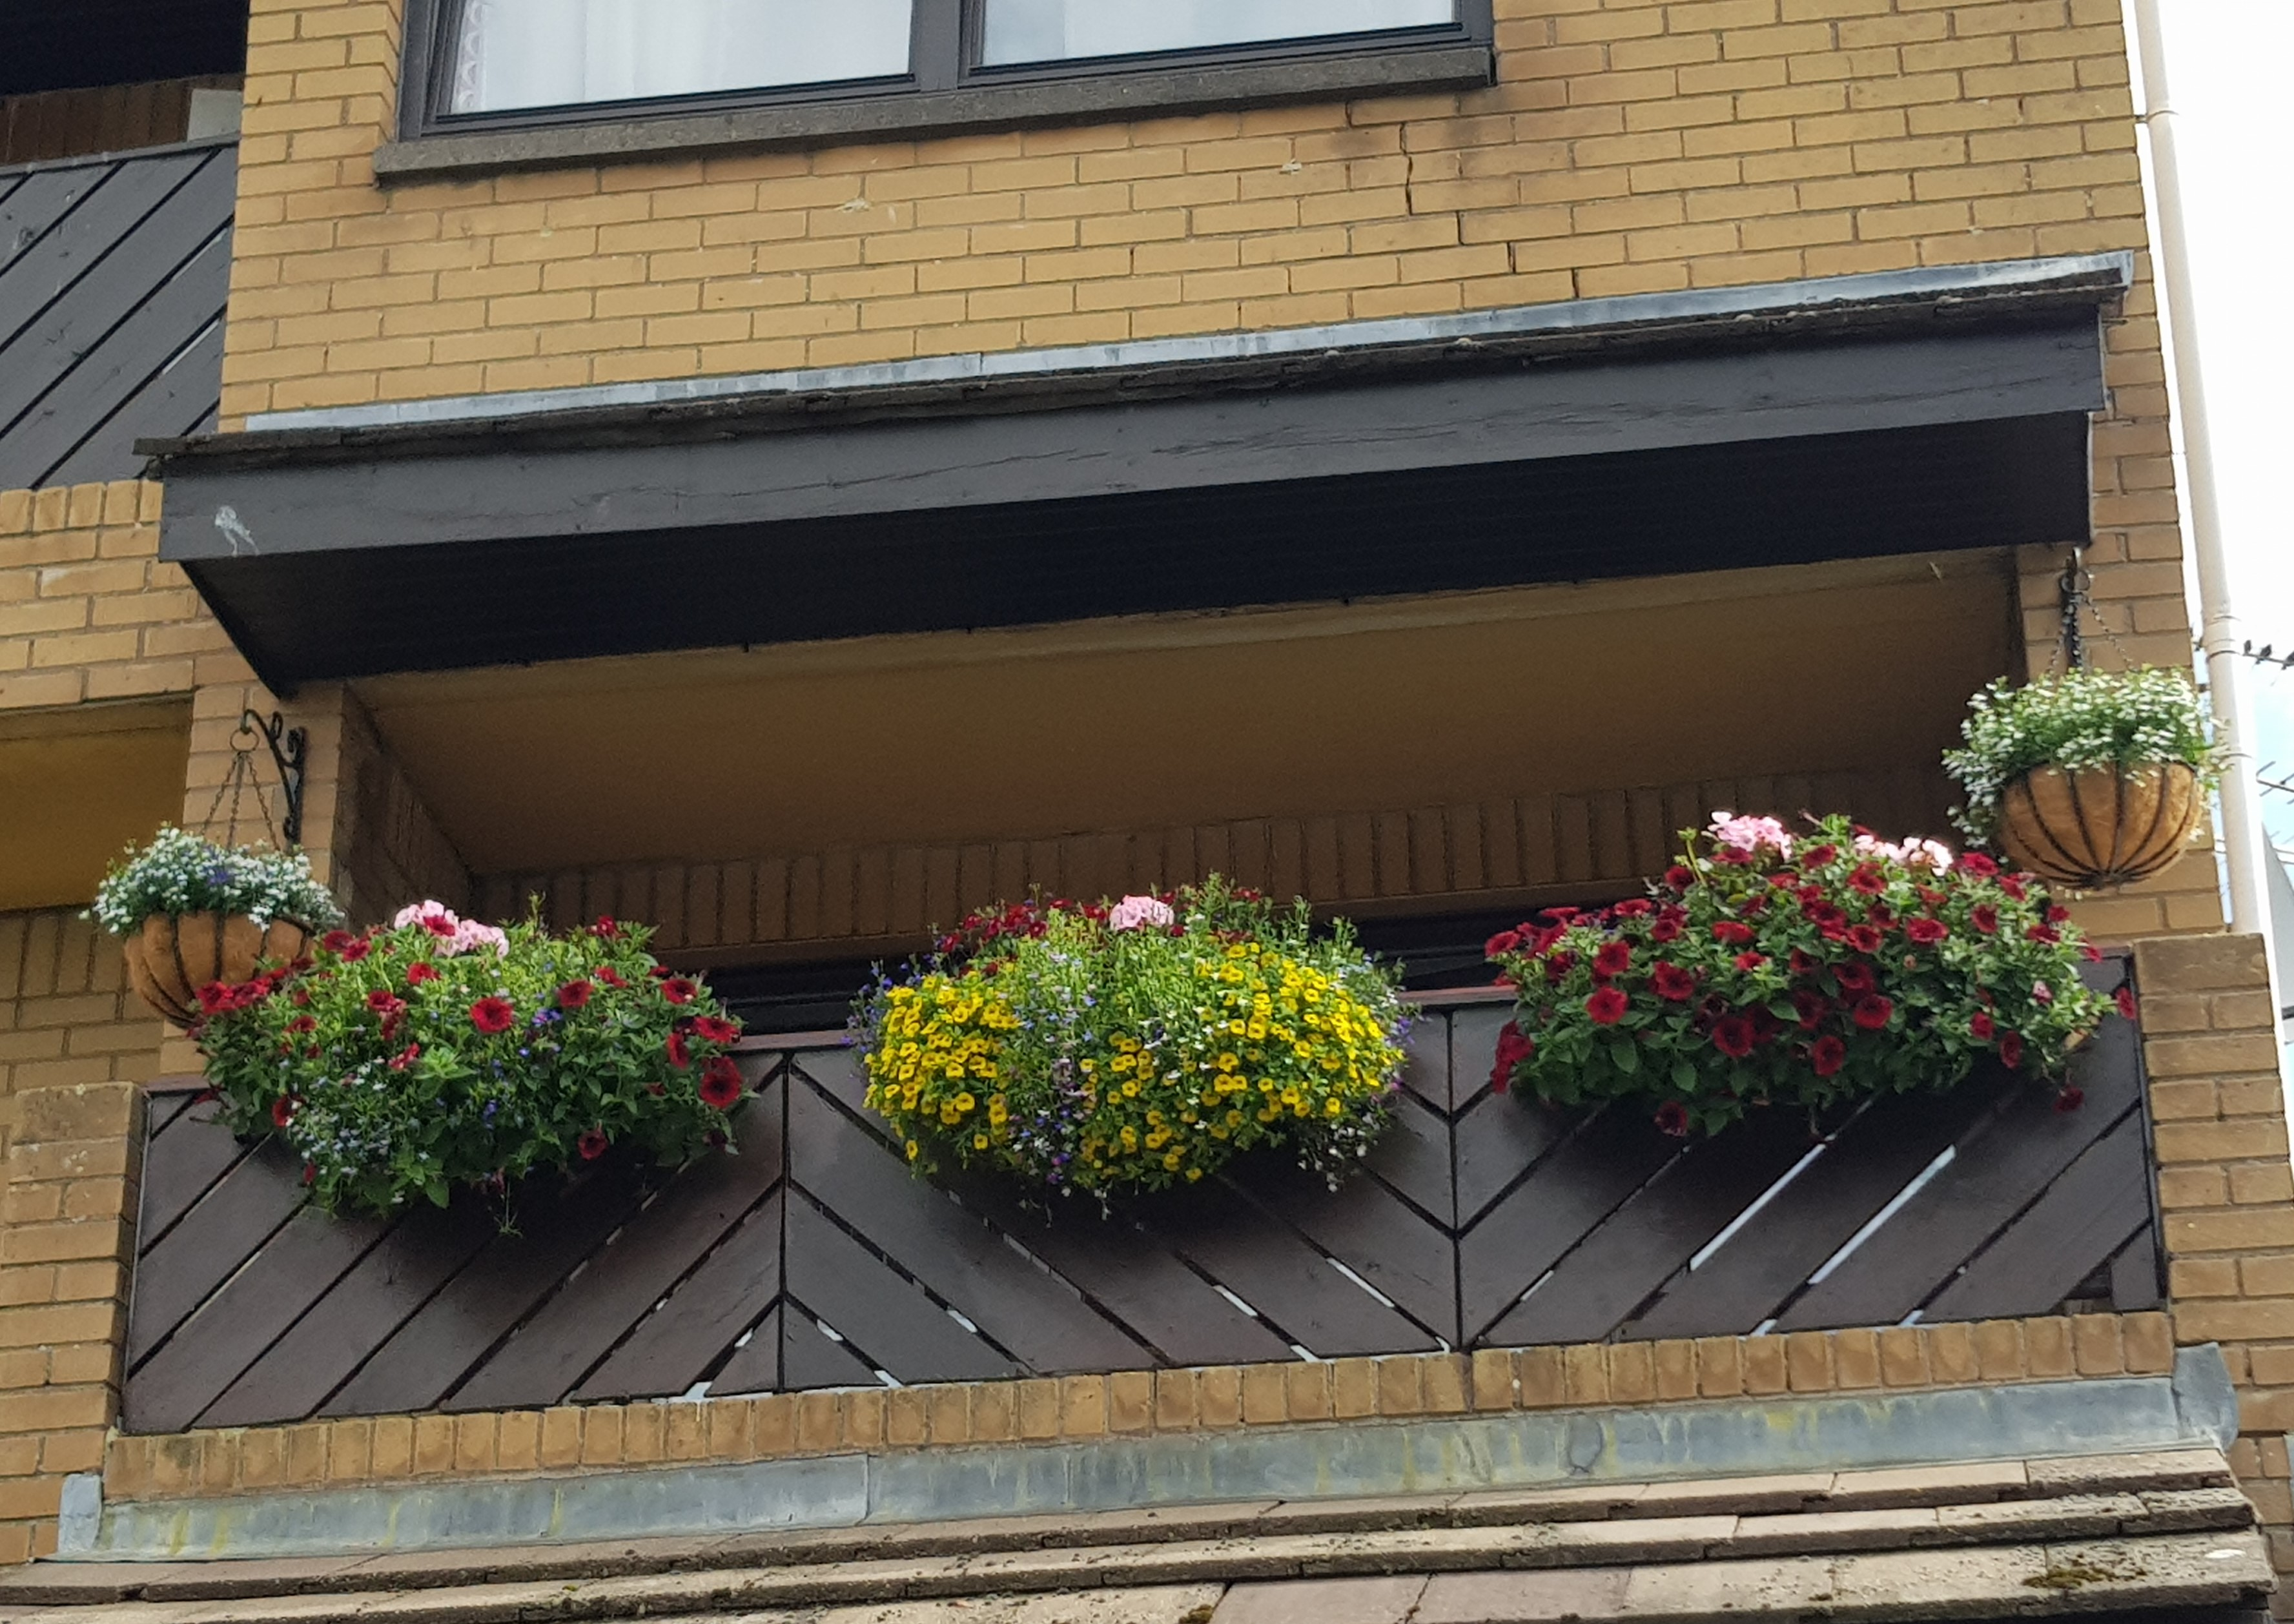 A blooming balcony 2019